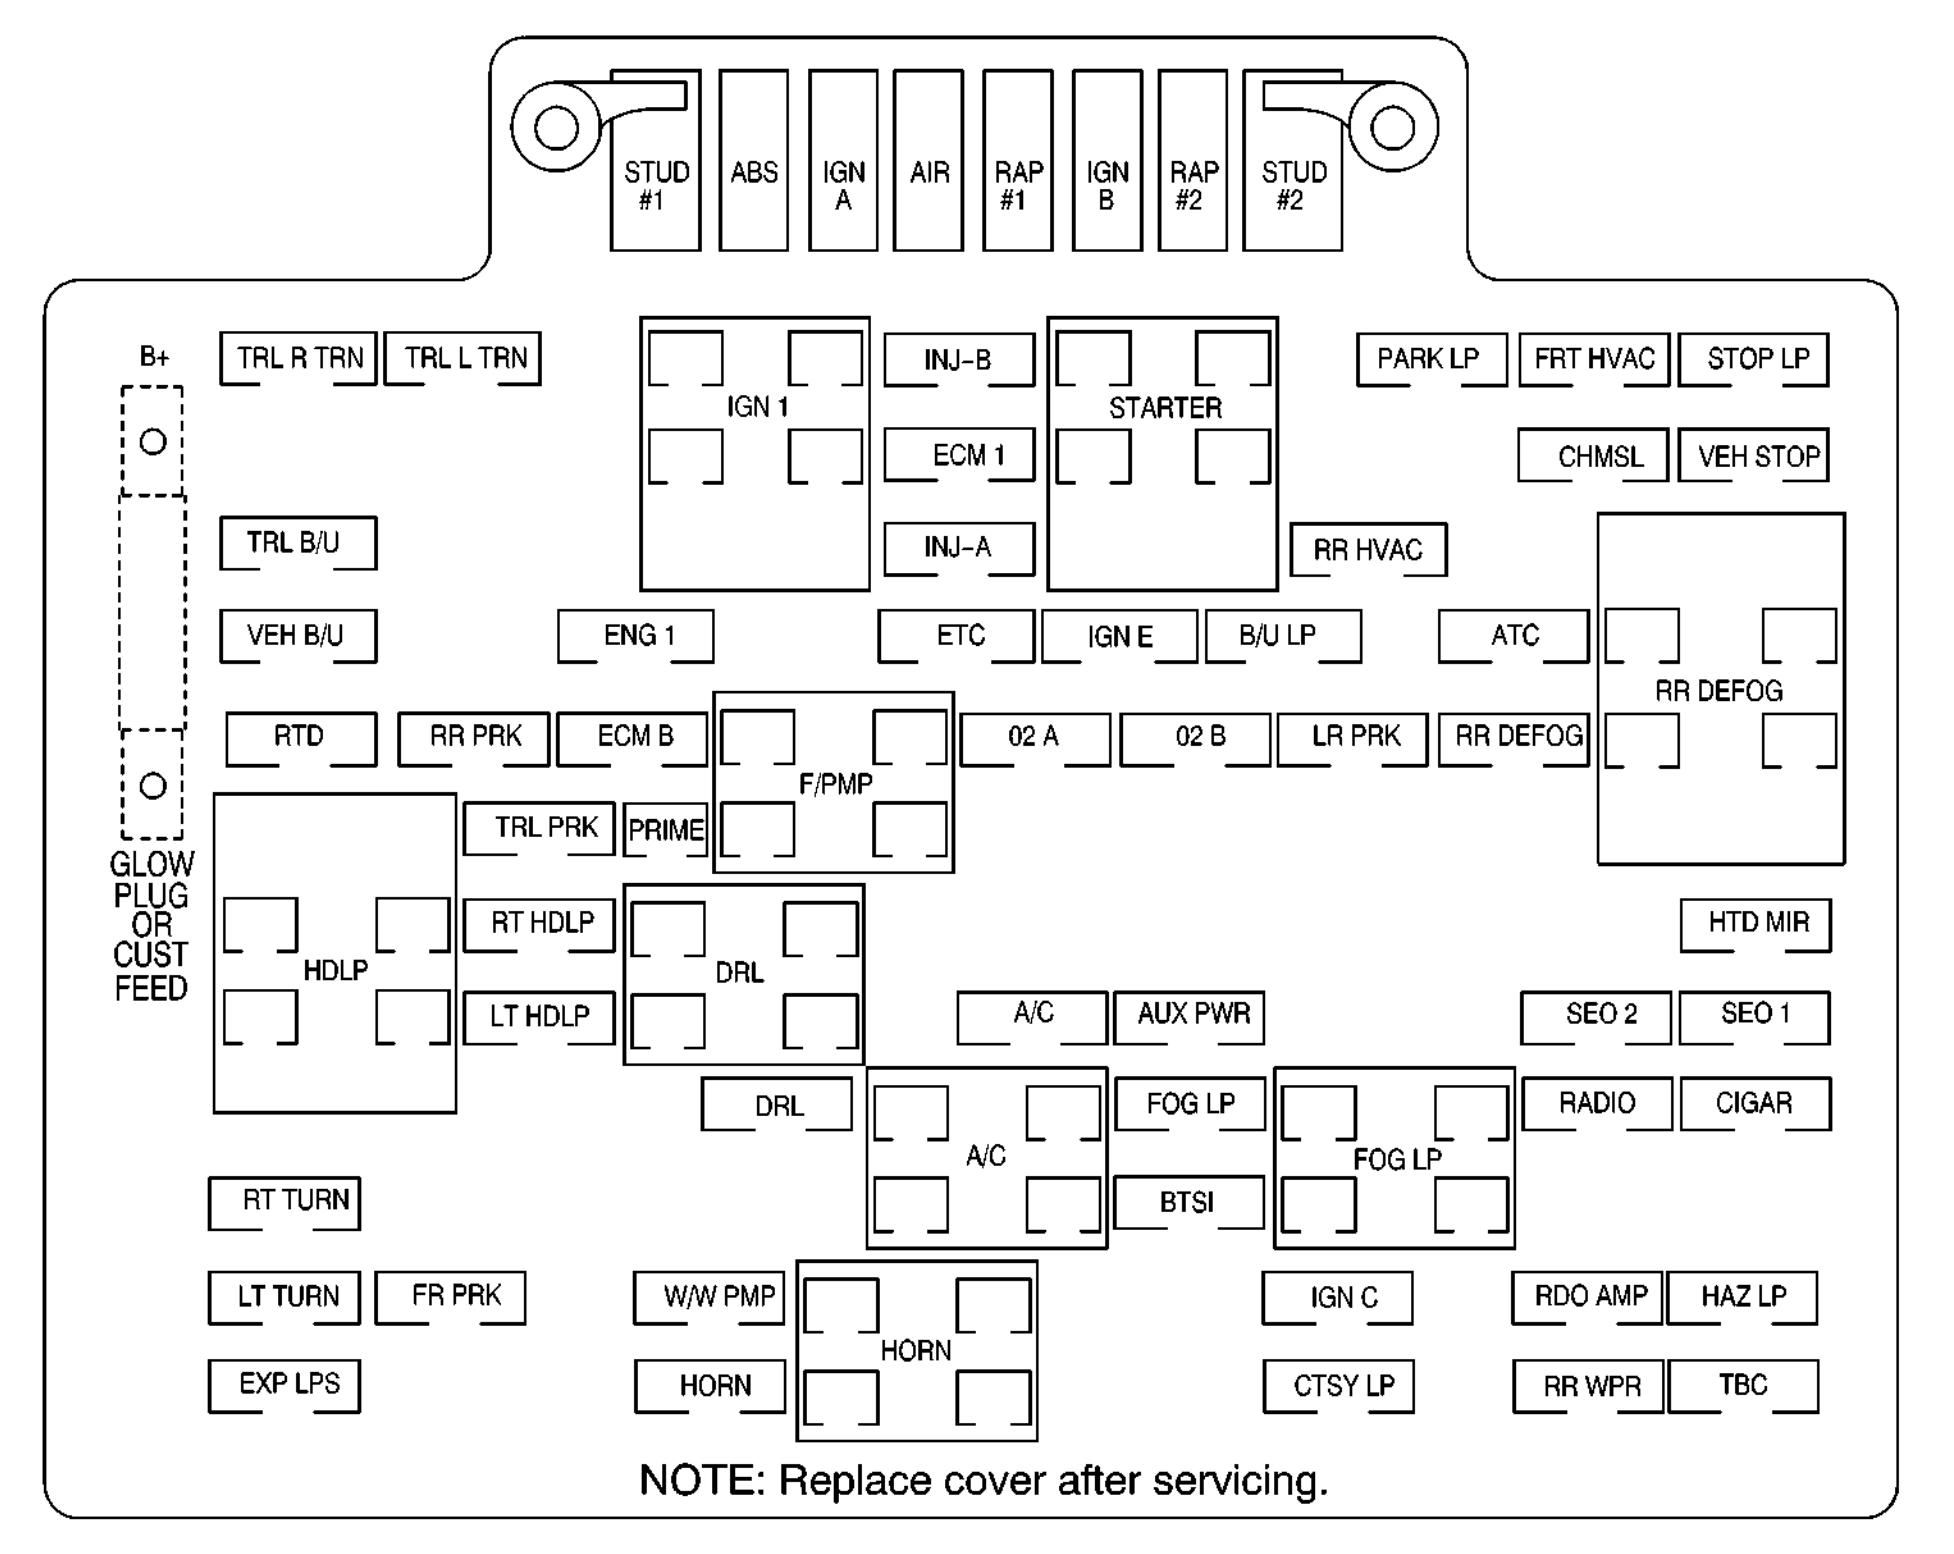 hight resolution of 2000 gmc yukon fuse panel diagram wiring diagrams value 2001 gmc sierra 1500 fuse box diagram 2001 gmc yukon fuse box diagram